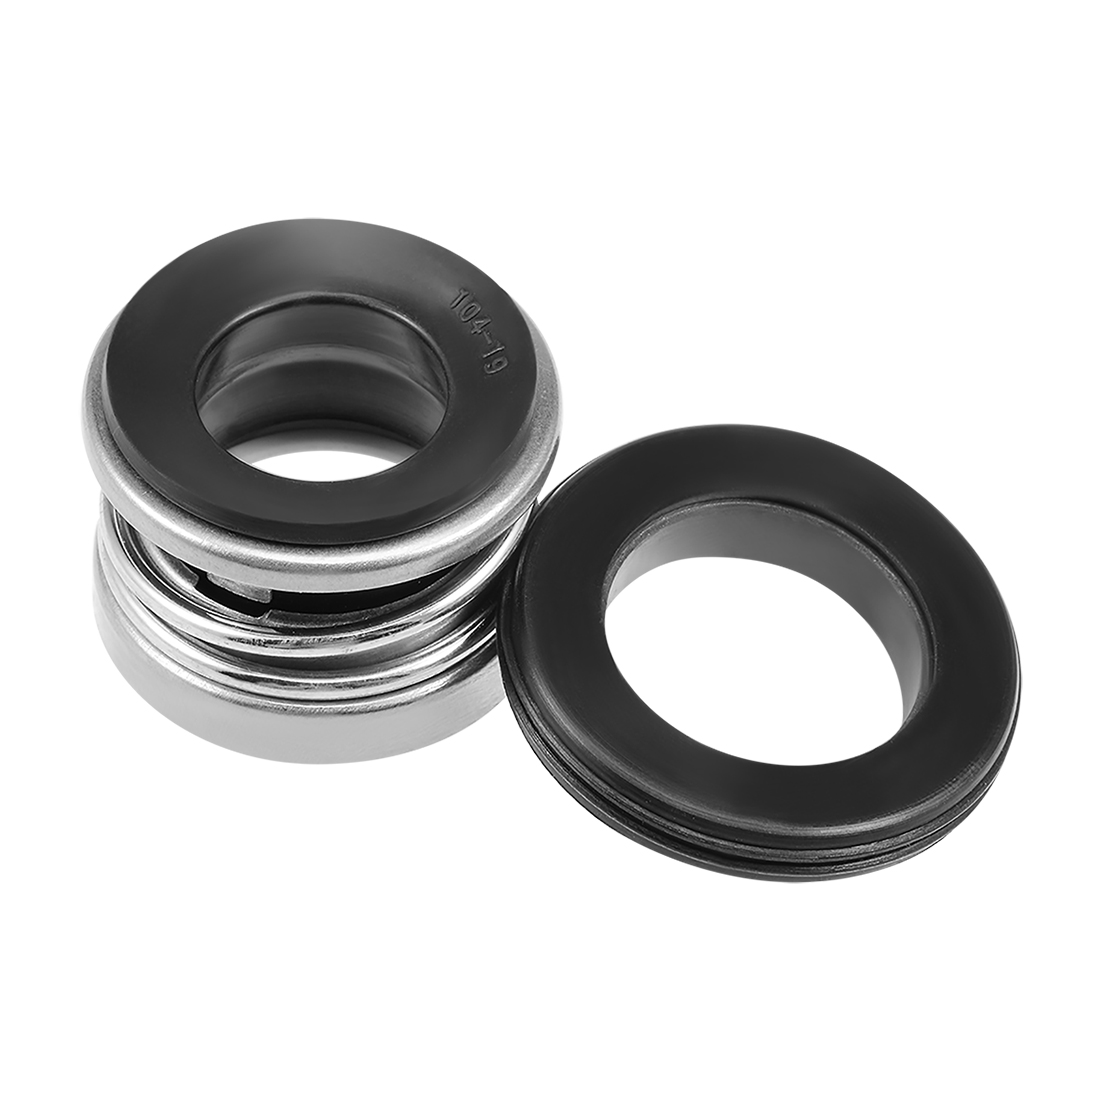 Mechanical Shaft Seal Replacement for Pool Spa Pump 2pcs 104-19 - image 3 of 4